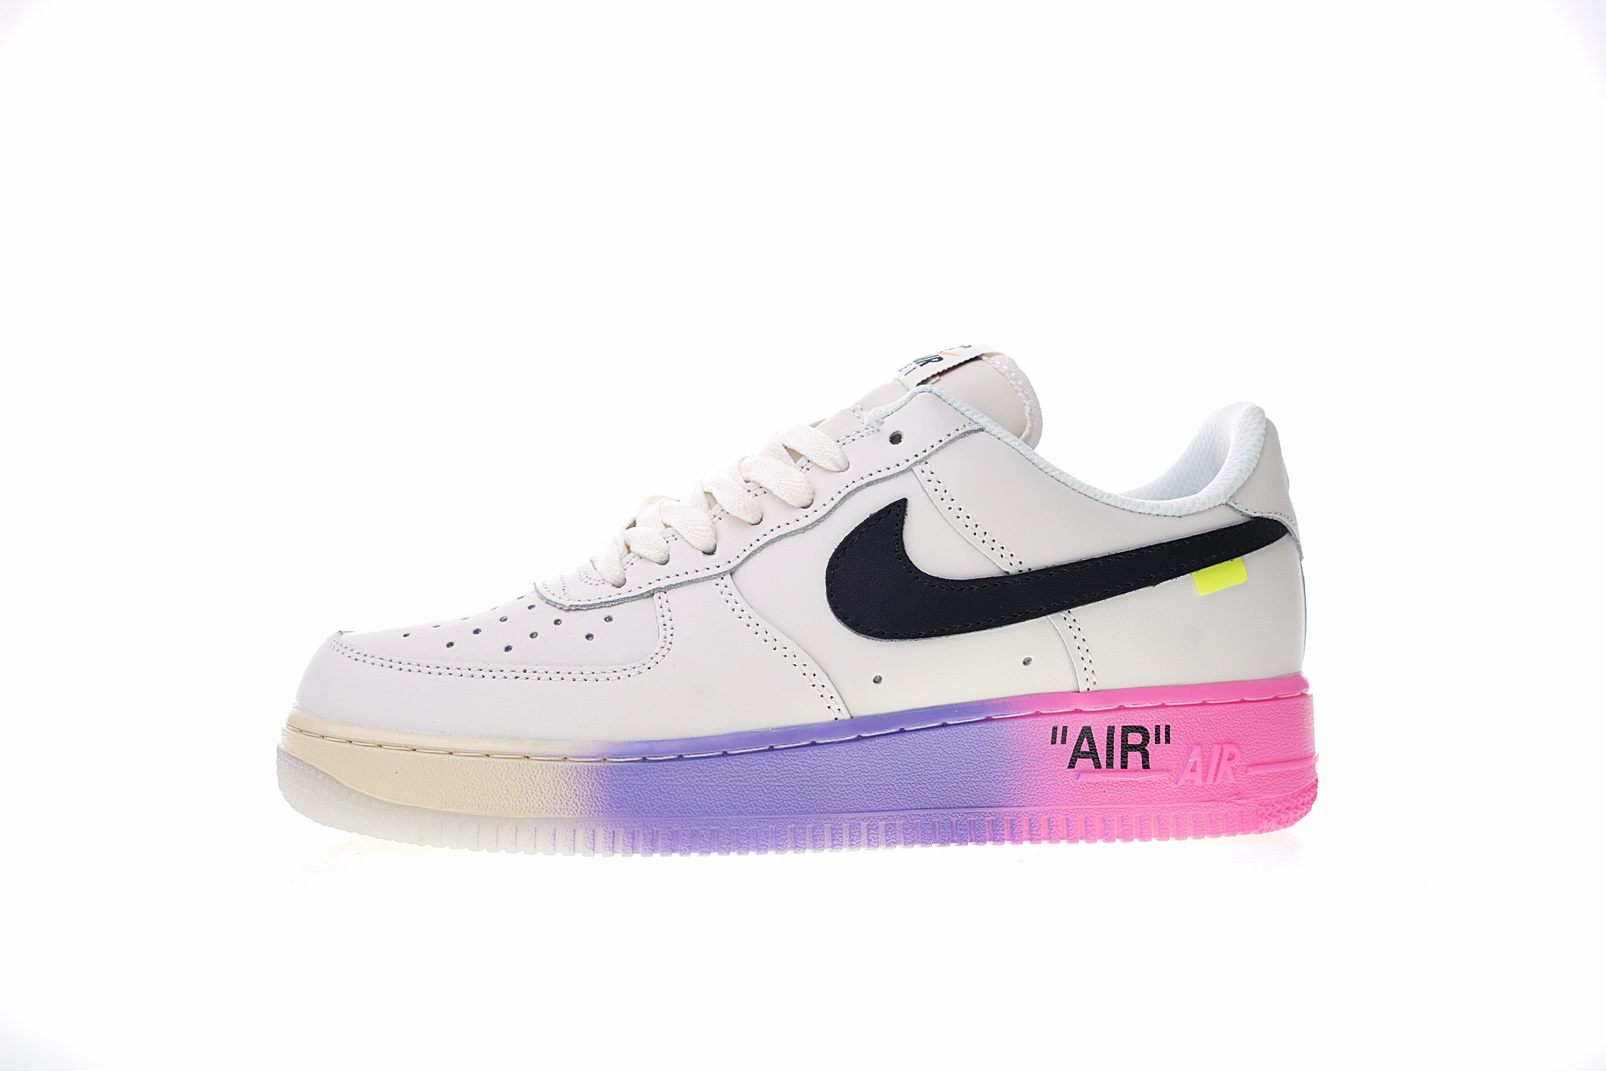 Off-White x Nike Air Force 1 Low 'Queen'